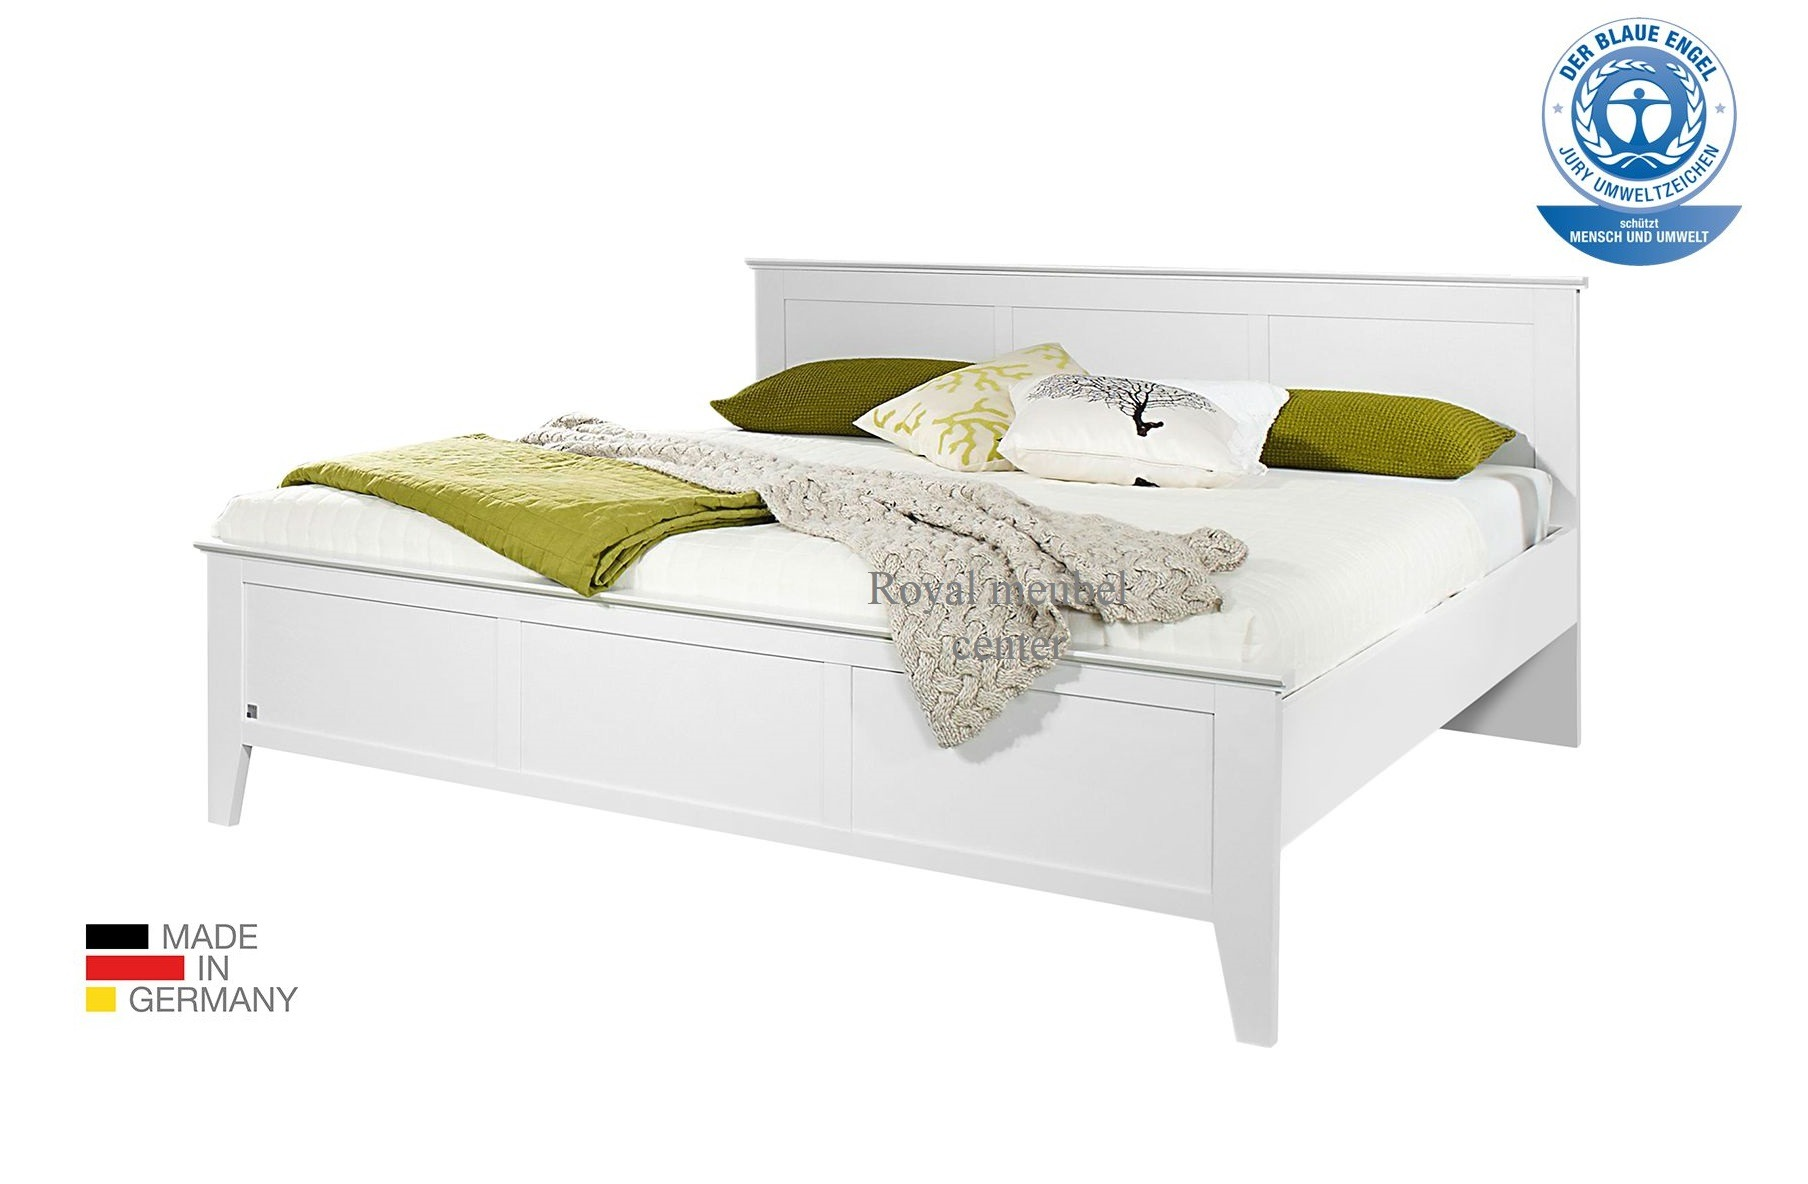 Wit Ledikant 2 Persoons.Ledikant Swiss 2 Persoons Bed Wit Boxer Bedden